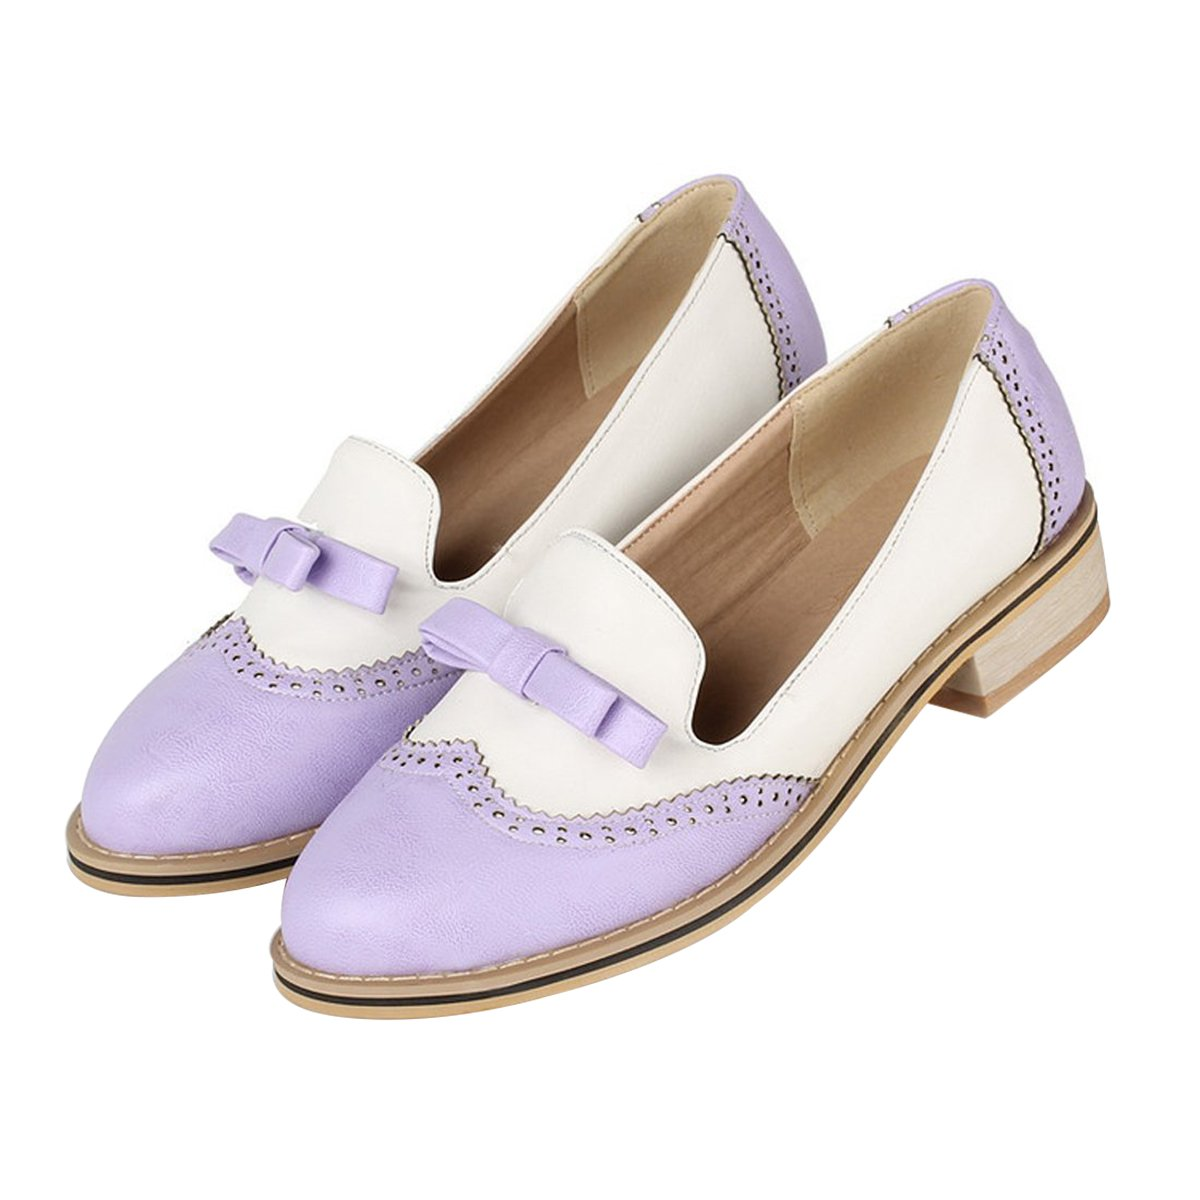 leanna Spring Summer Fashion Vintage Brogue Women's Low Heel Sweet Bowknot Oxfords Shoes Candy Color